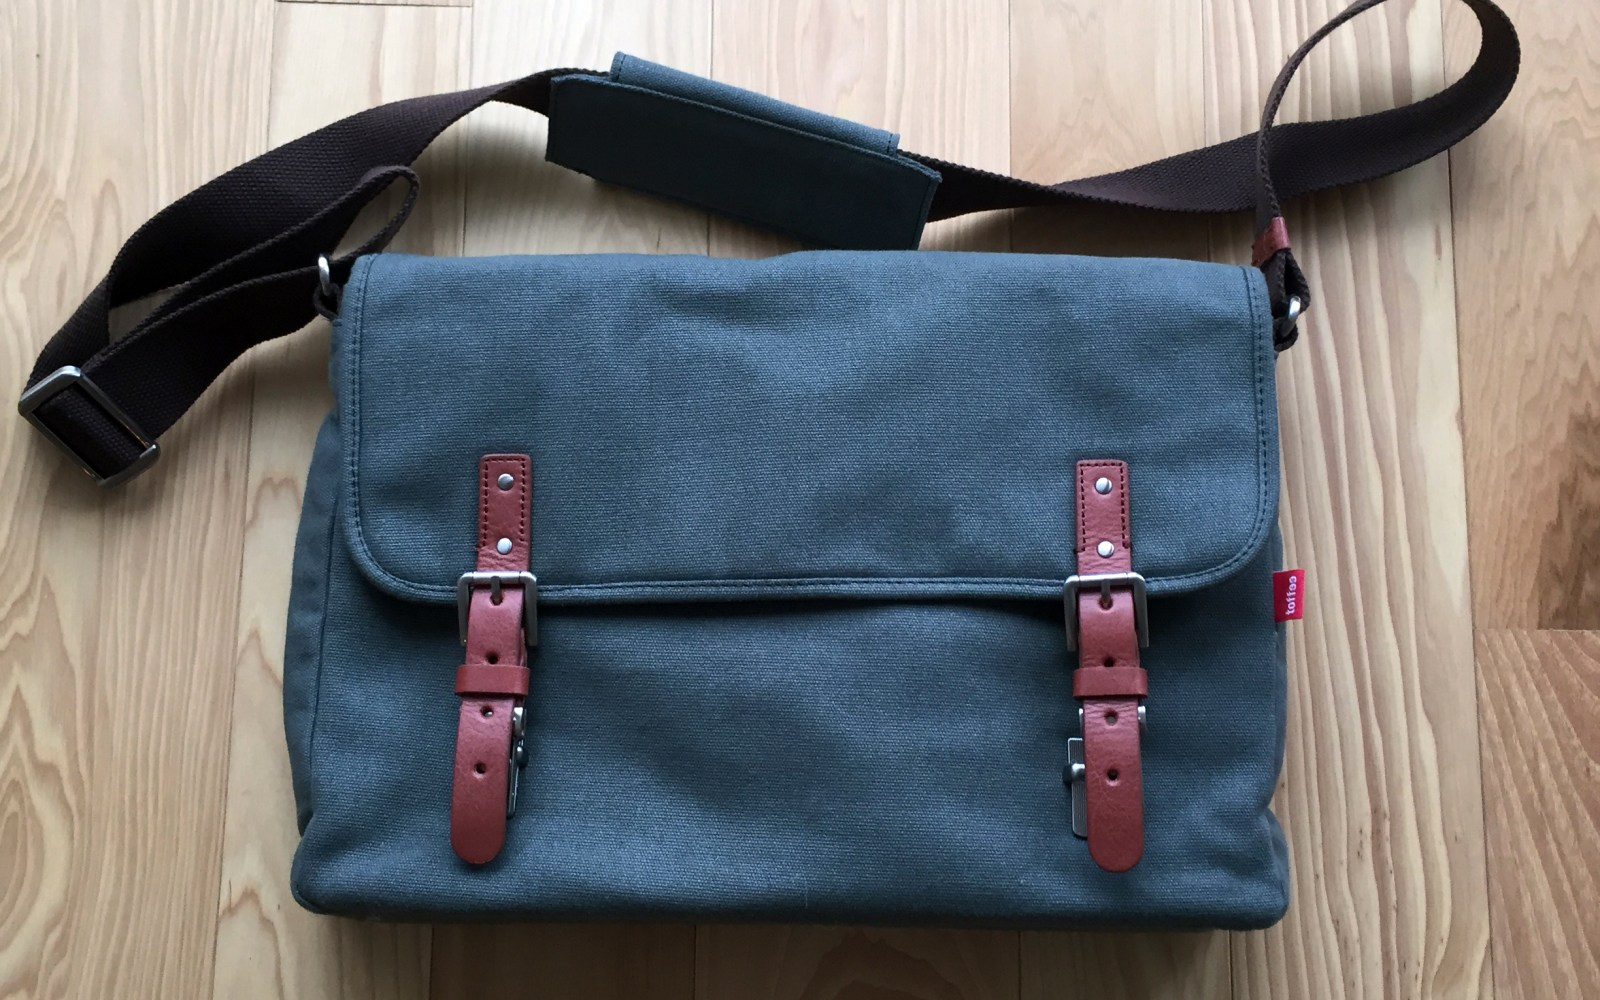 Review: Toffee's Fitzroy Satchel is a solid gift for thoughtful commuters